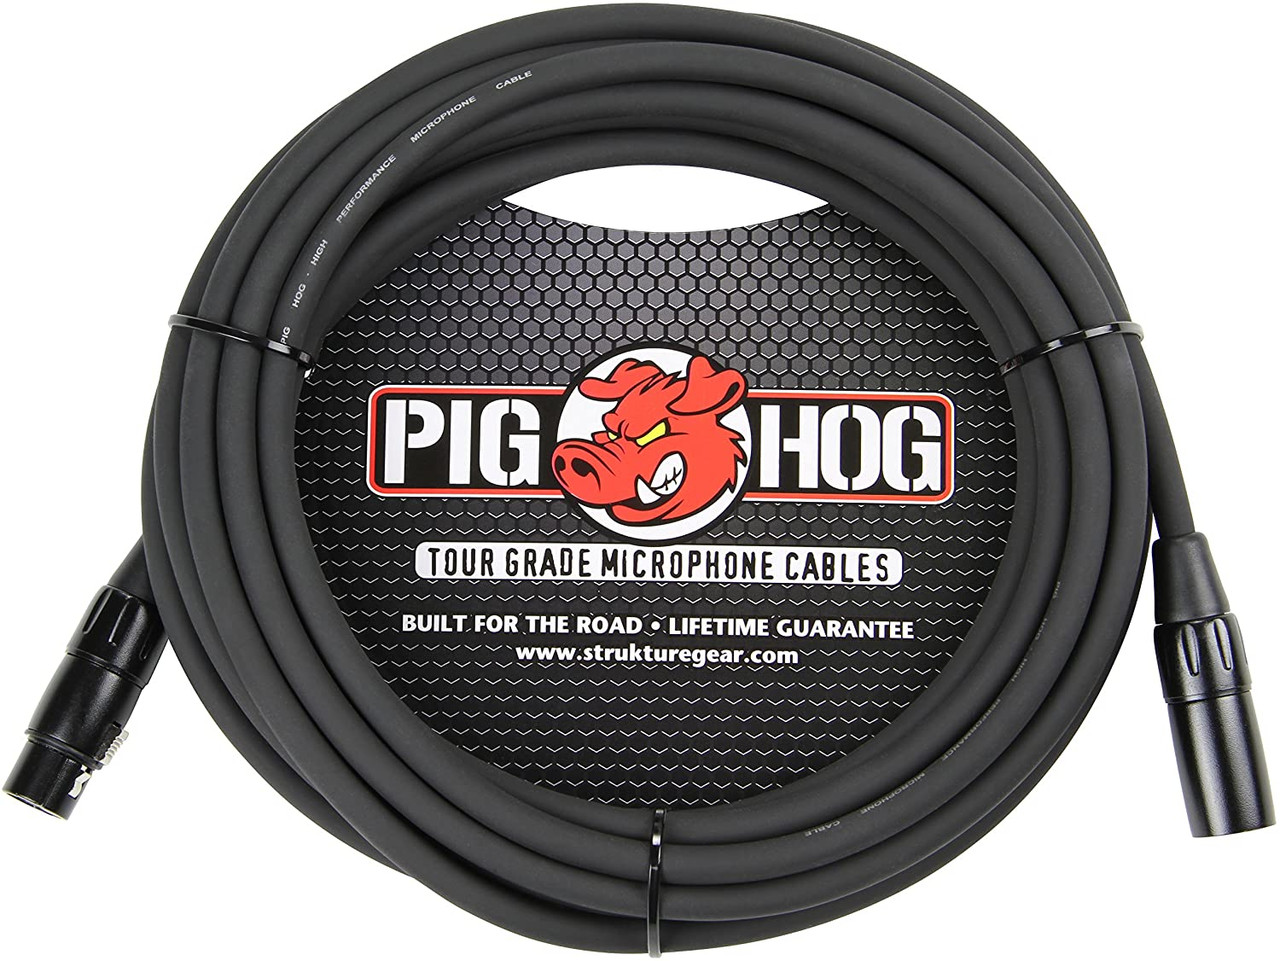 Pig Hog PHM15 15ft XLR 8mm Microphone Cable